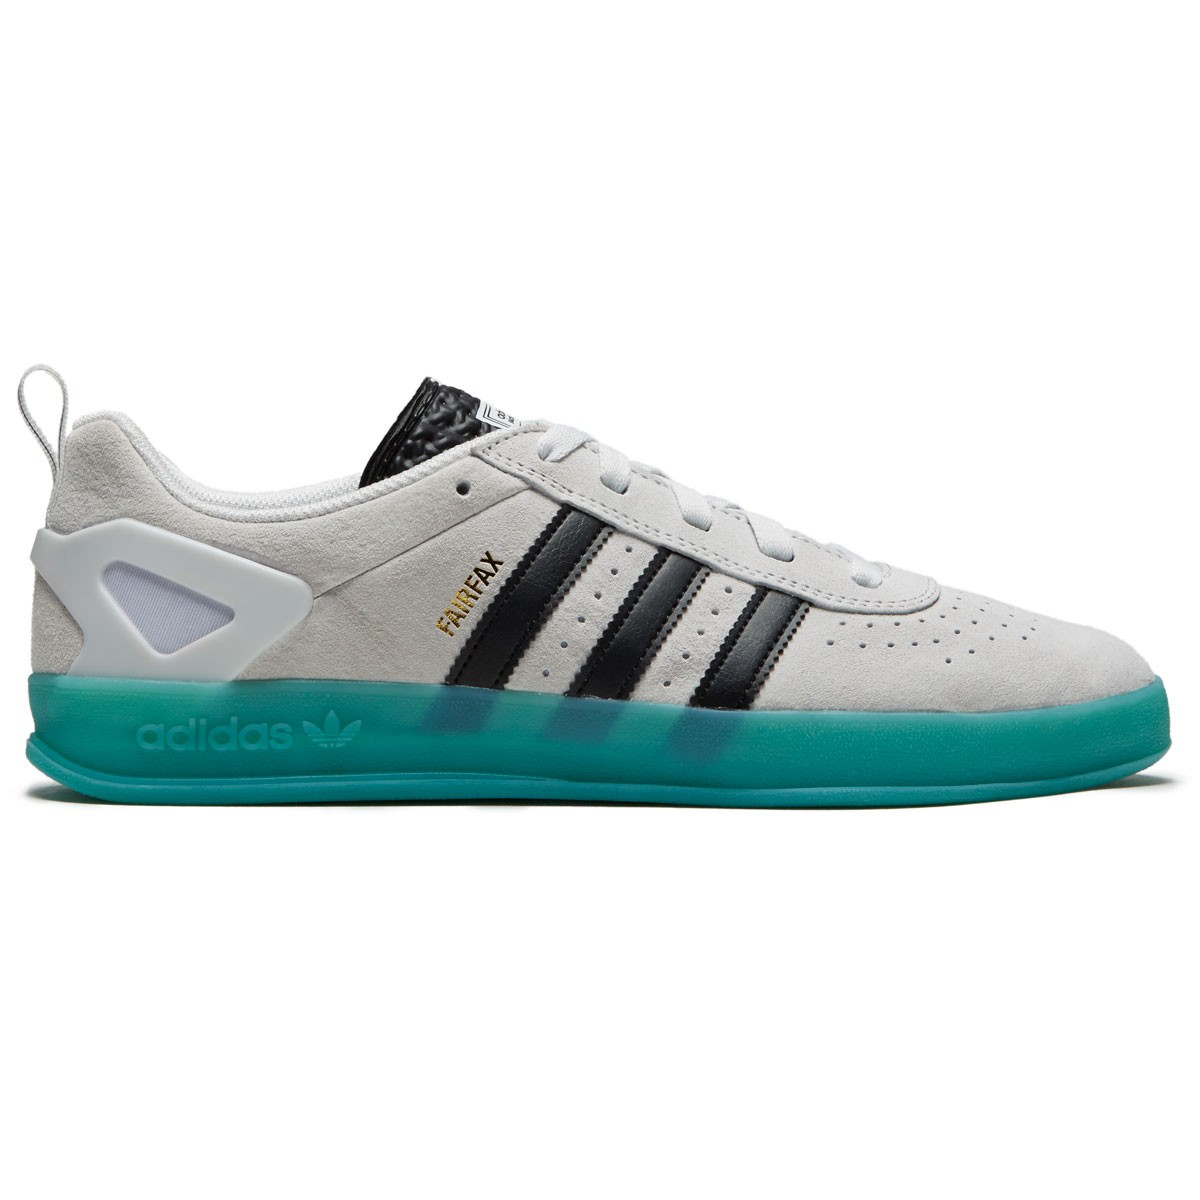 a354b29b04 Adidas X Palace Pro Benny Shoes - White Black Bright Cyan - 10.0